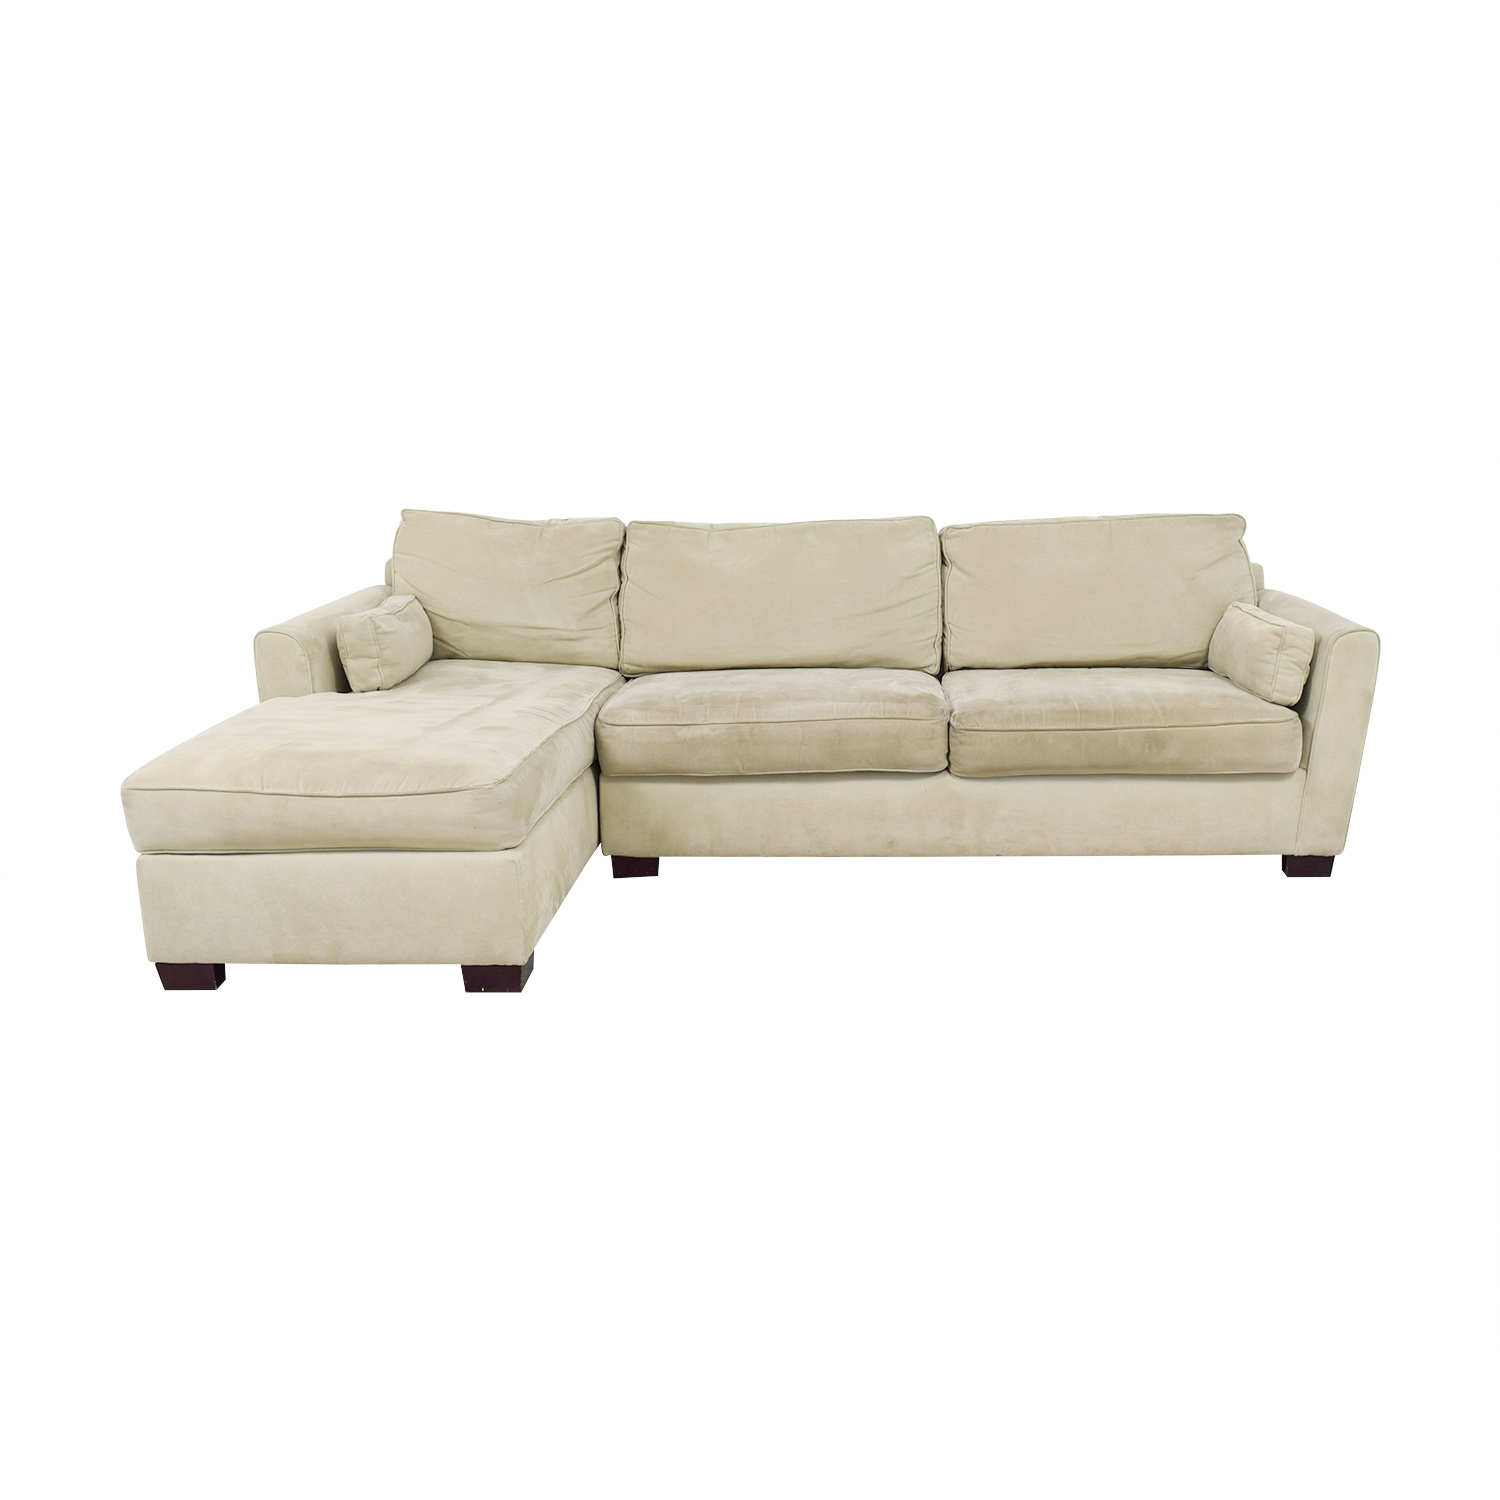 shop Bloomingdale's Bloomingdale's Beige Chaise Sectional online